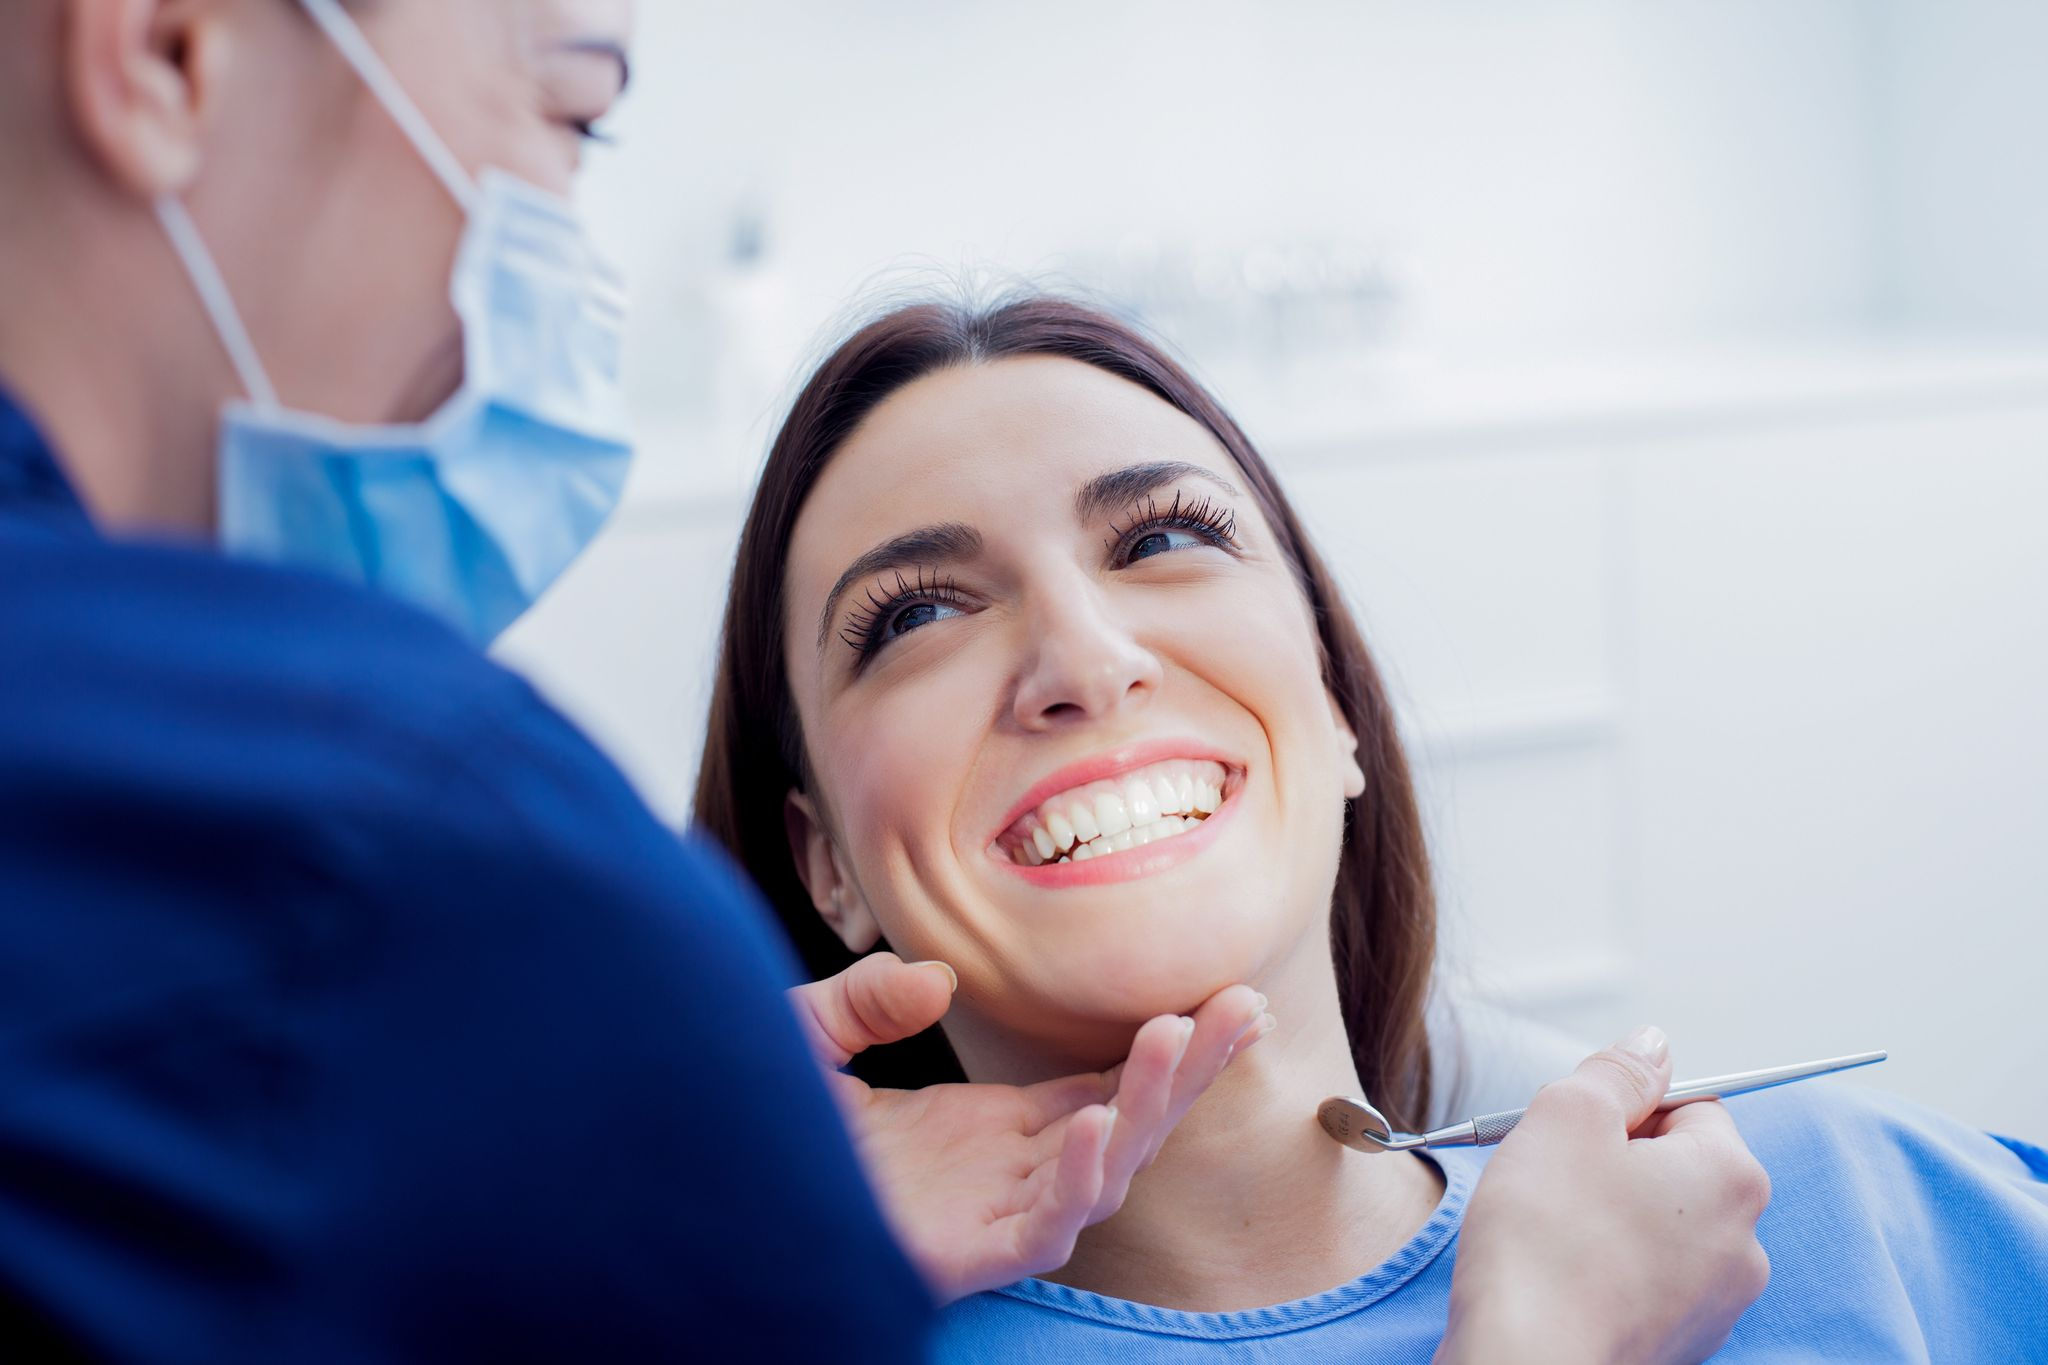 Dentist in Lake City | Do I Really Need an Exam?